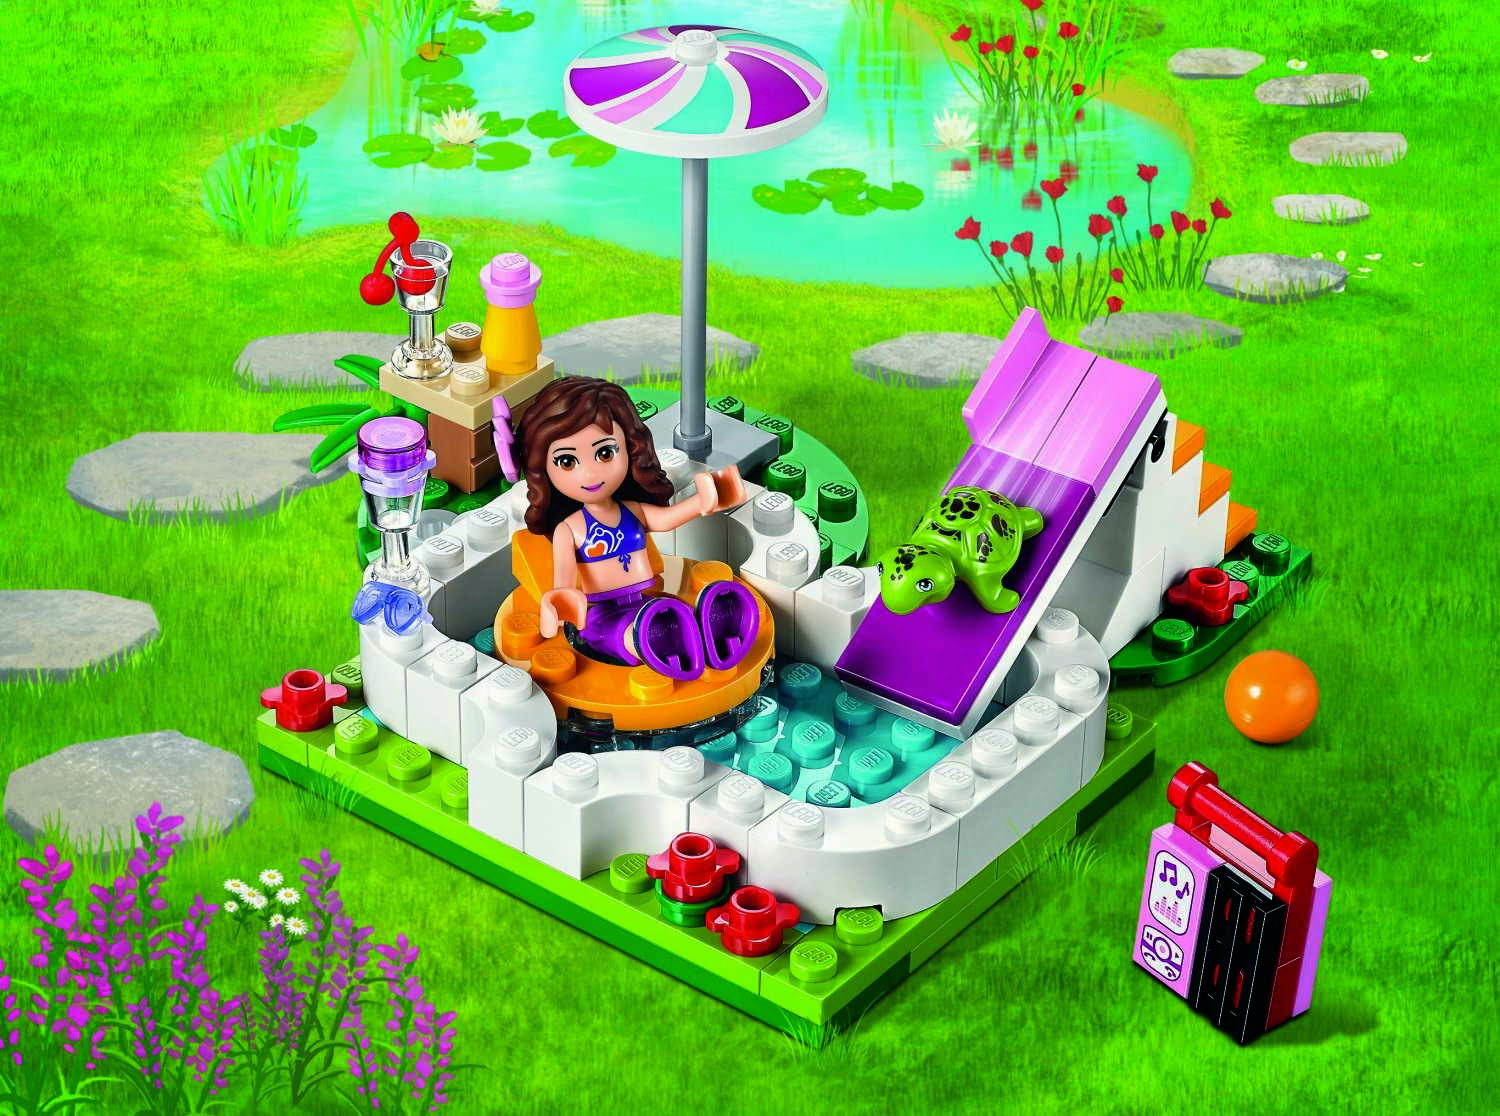 Brick friends lego 41090 olivia 39 s garden pool for Lego friends olivia s garden pool 41090